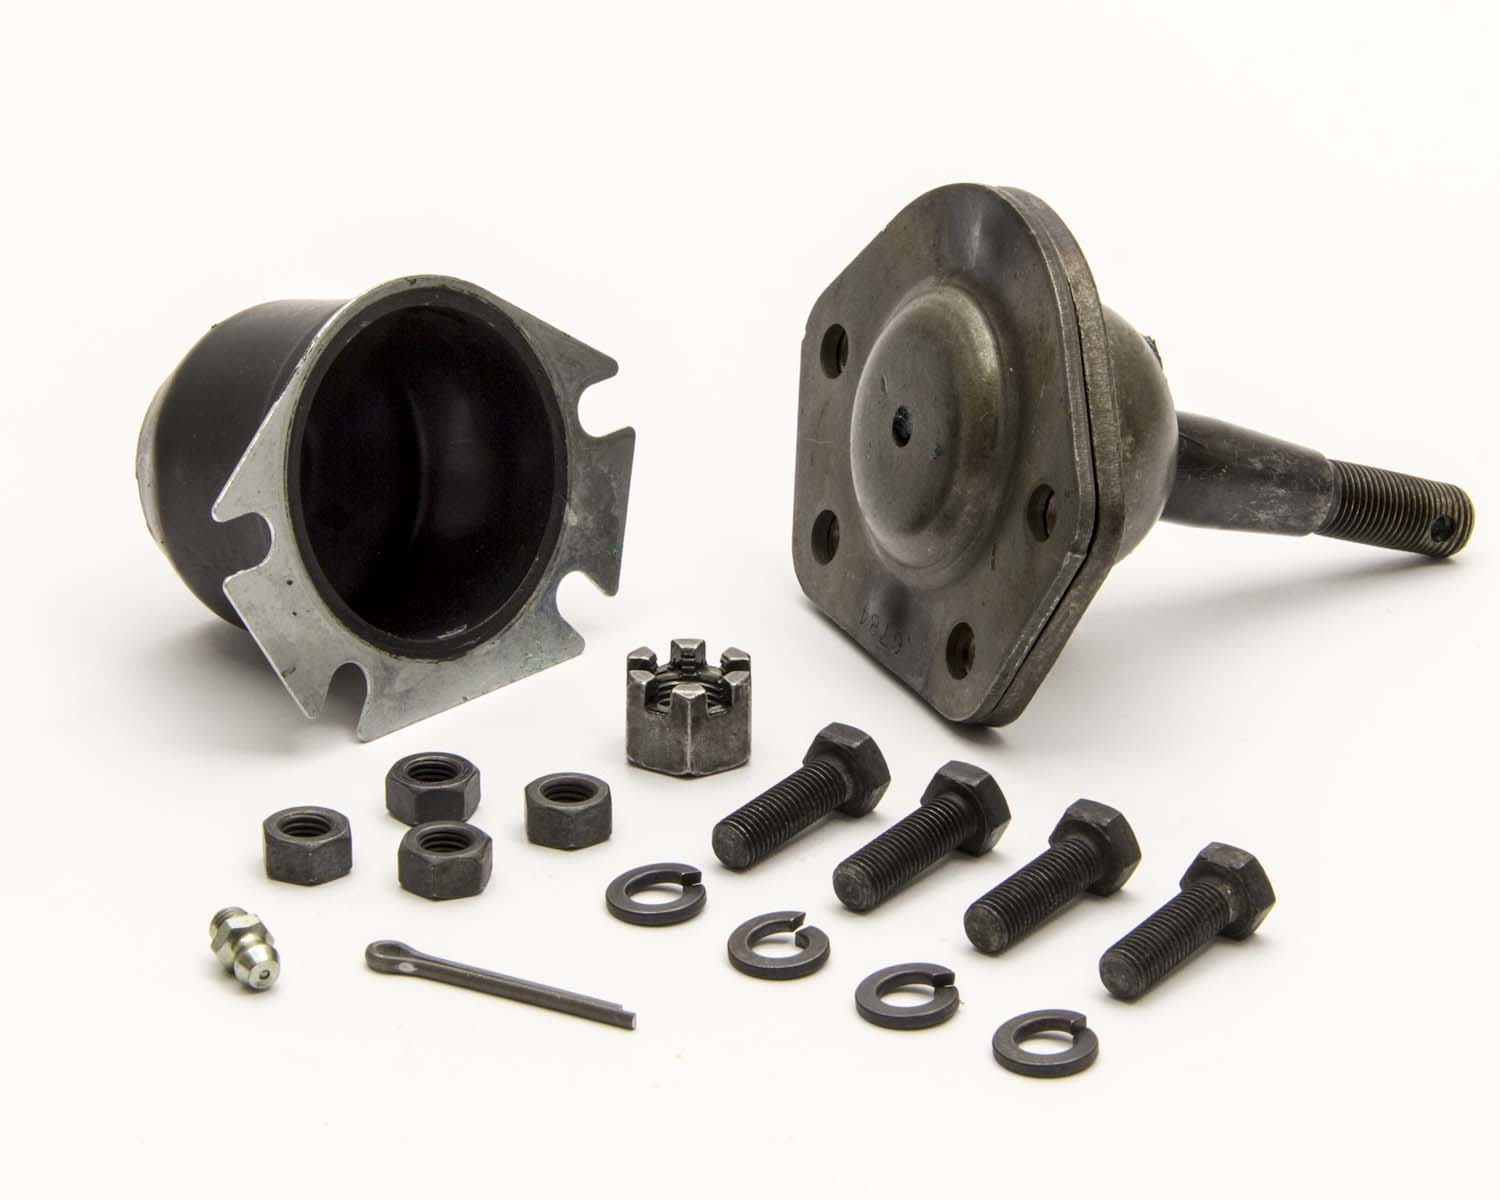 Afco 20032-1 Ball Joint, Greasable, Upper, Bolt-In, AFCO Control Arms, Longer Stud to Raise Roll Center, Each